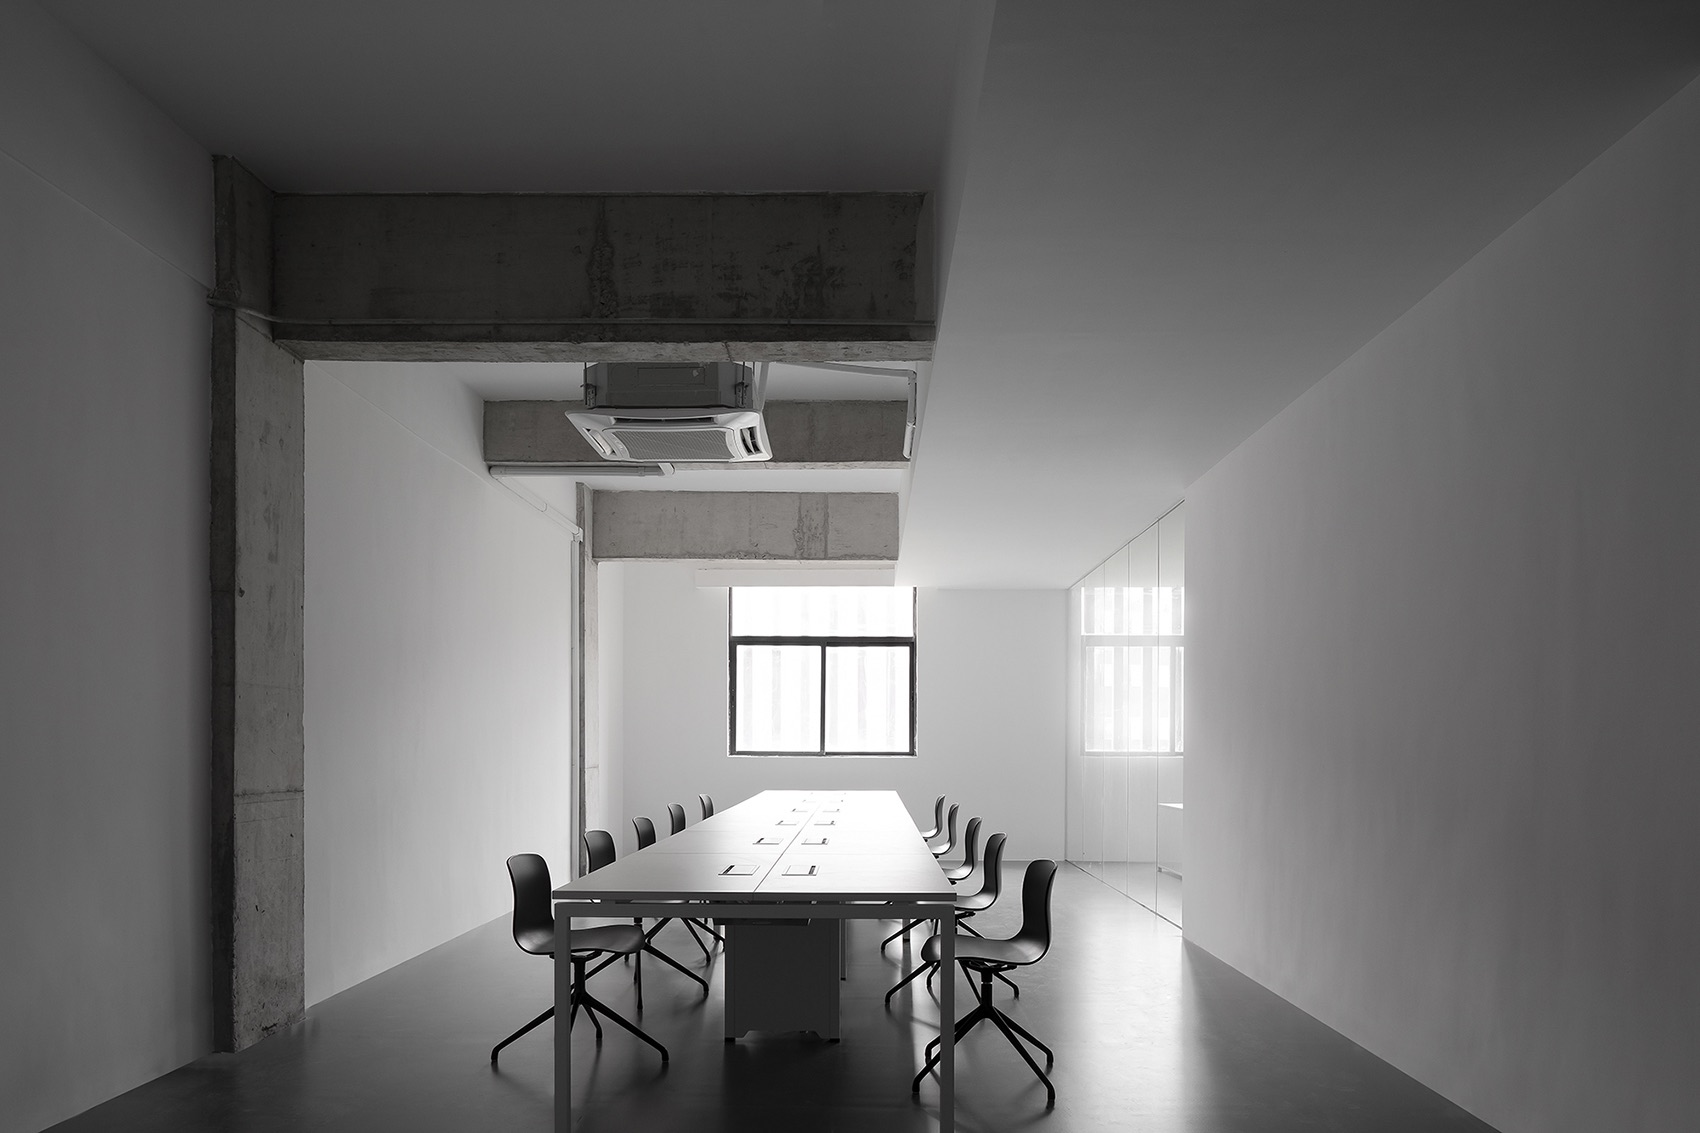 jyc-clothing-office-7